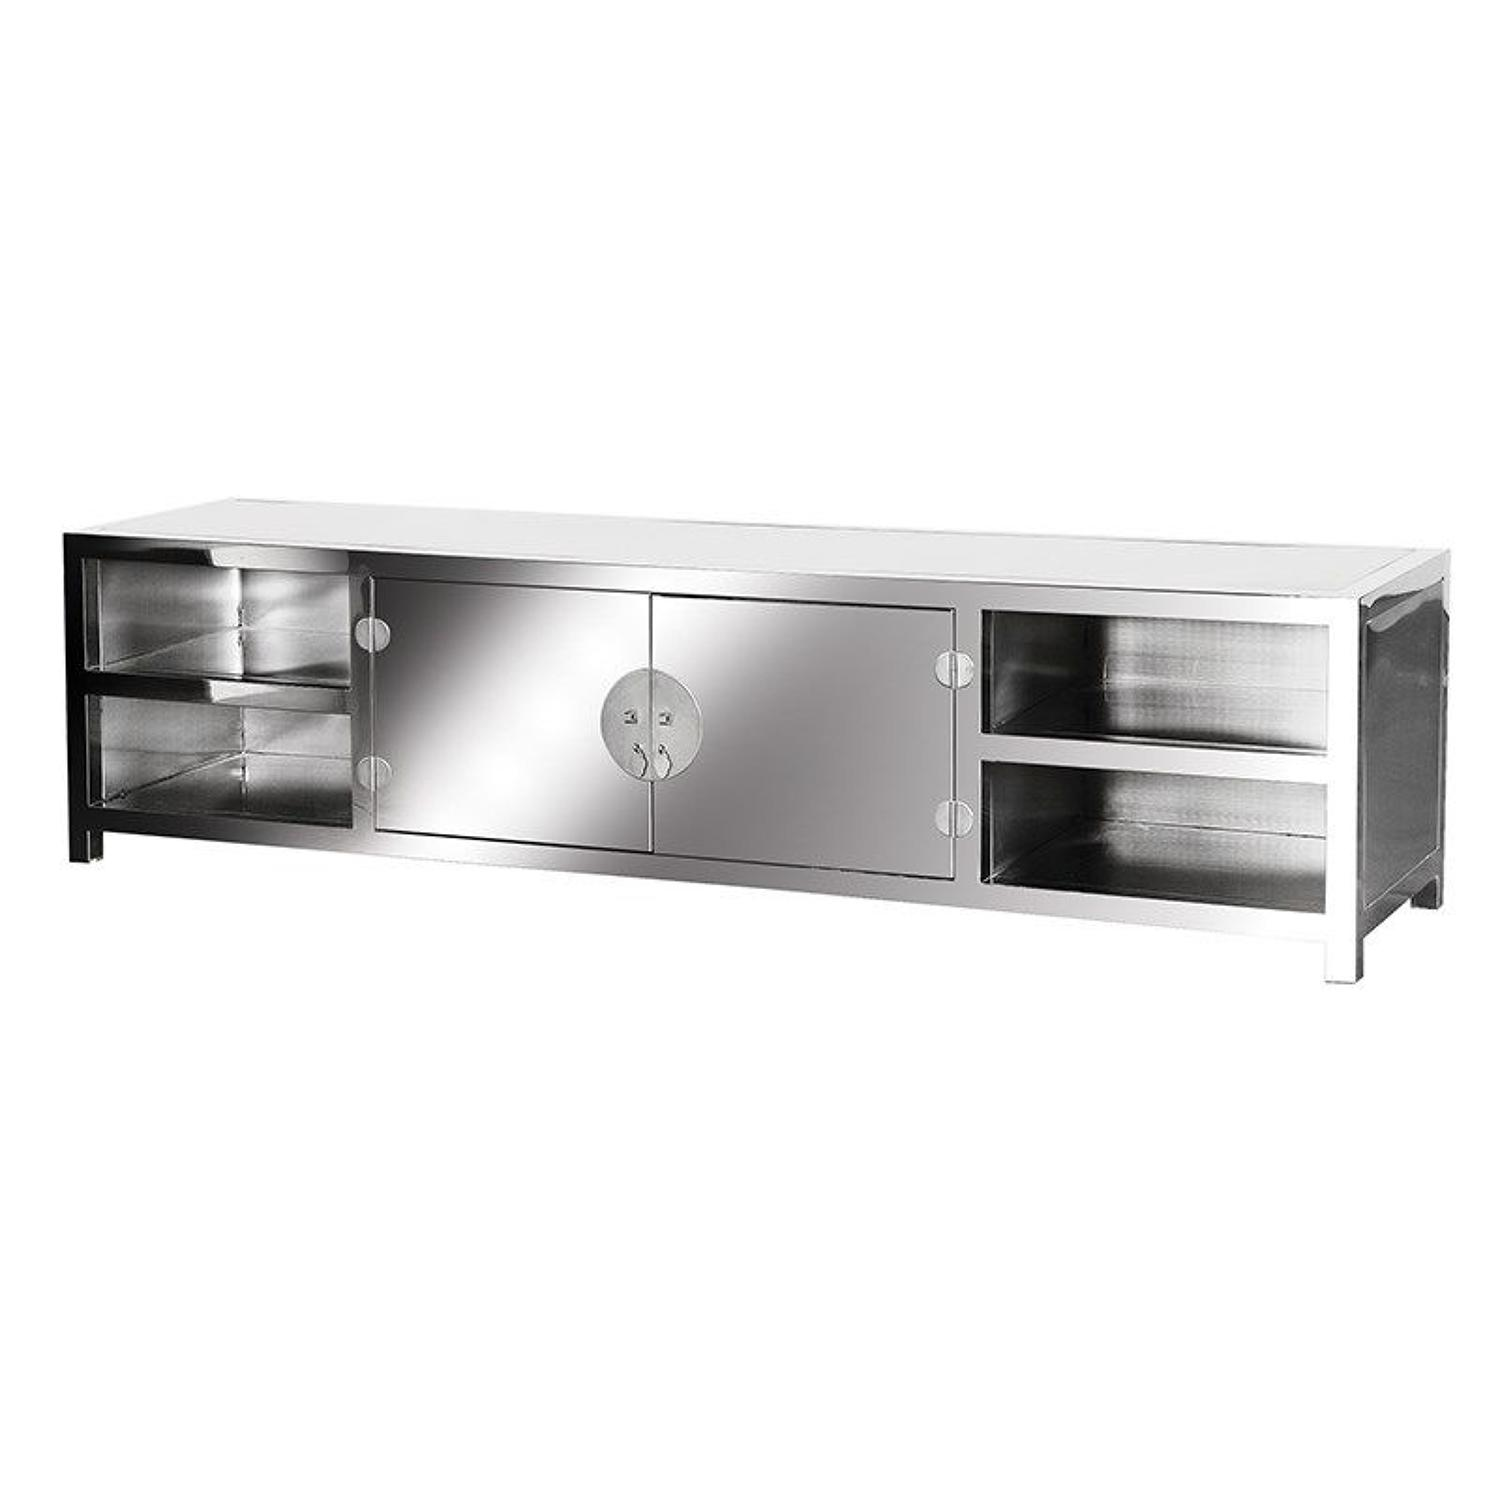 Stainless steel TV unit – highly polished